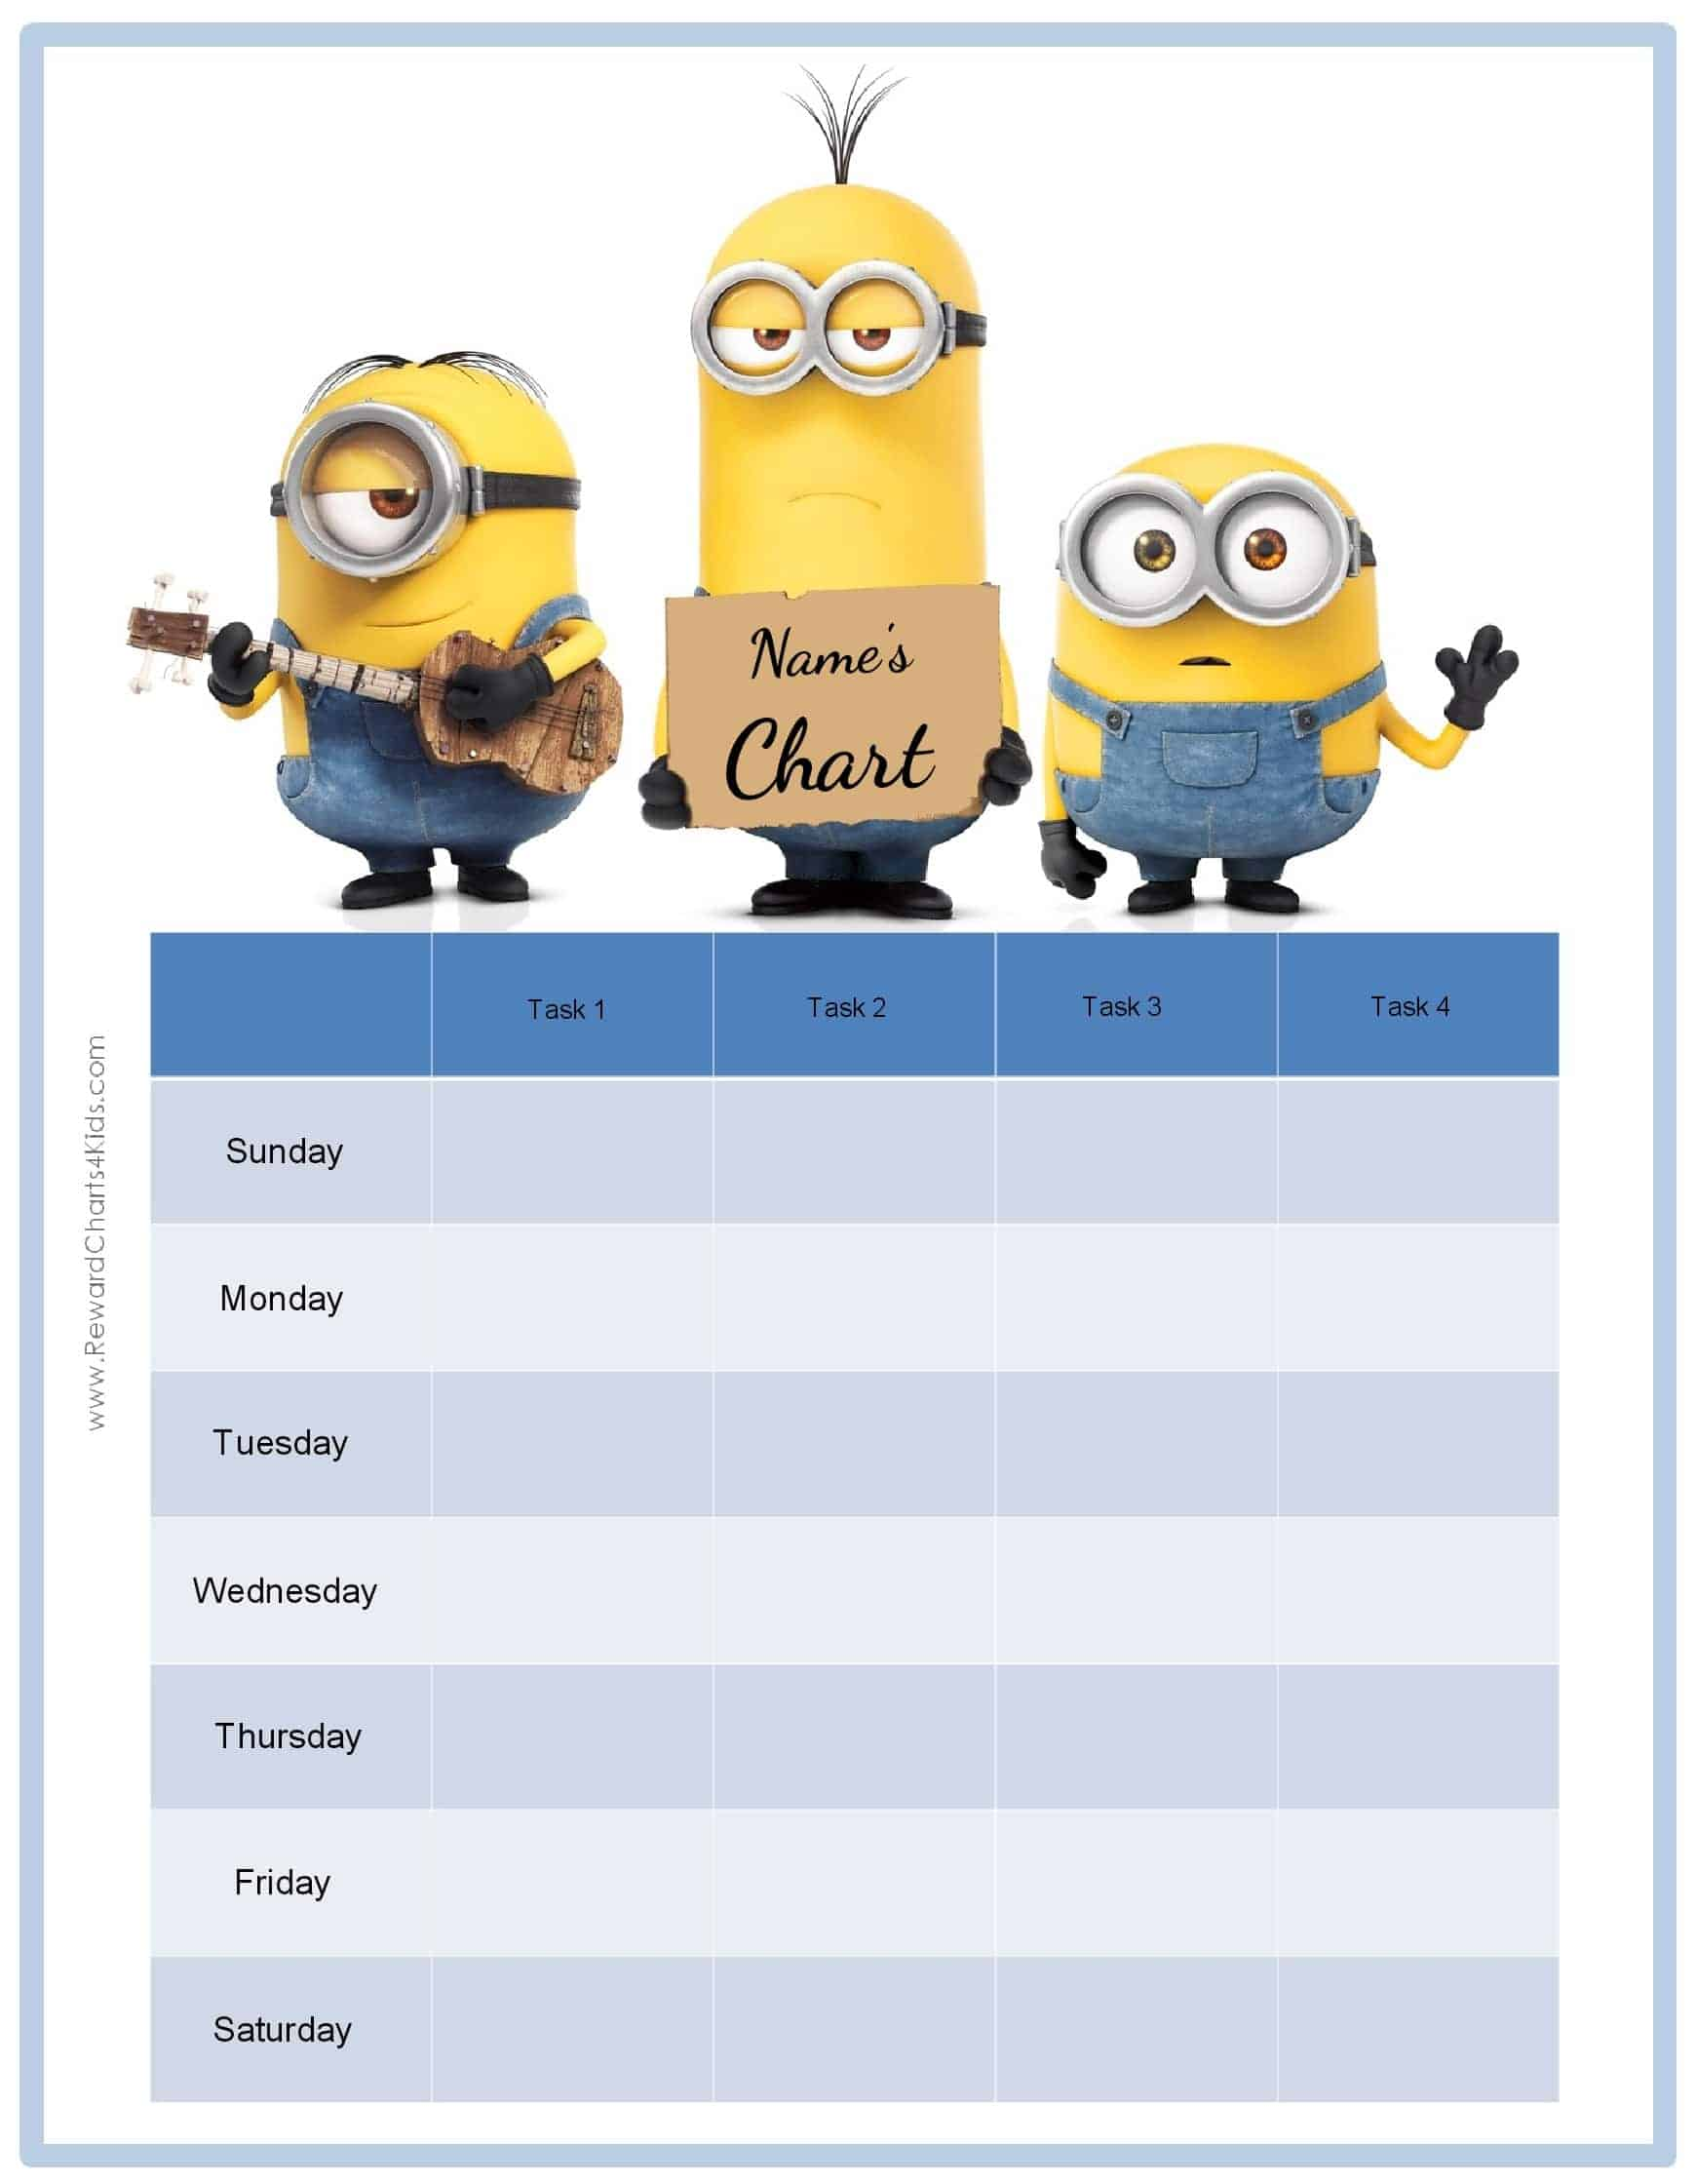 potty training chart template sample cv service potty training chart template potty training charts reward charts 4 kids chore chart template behavior chart